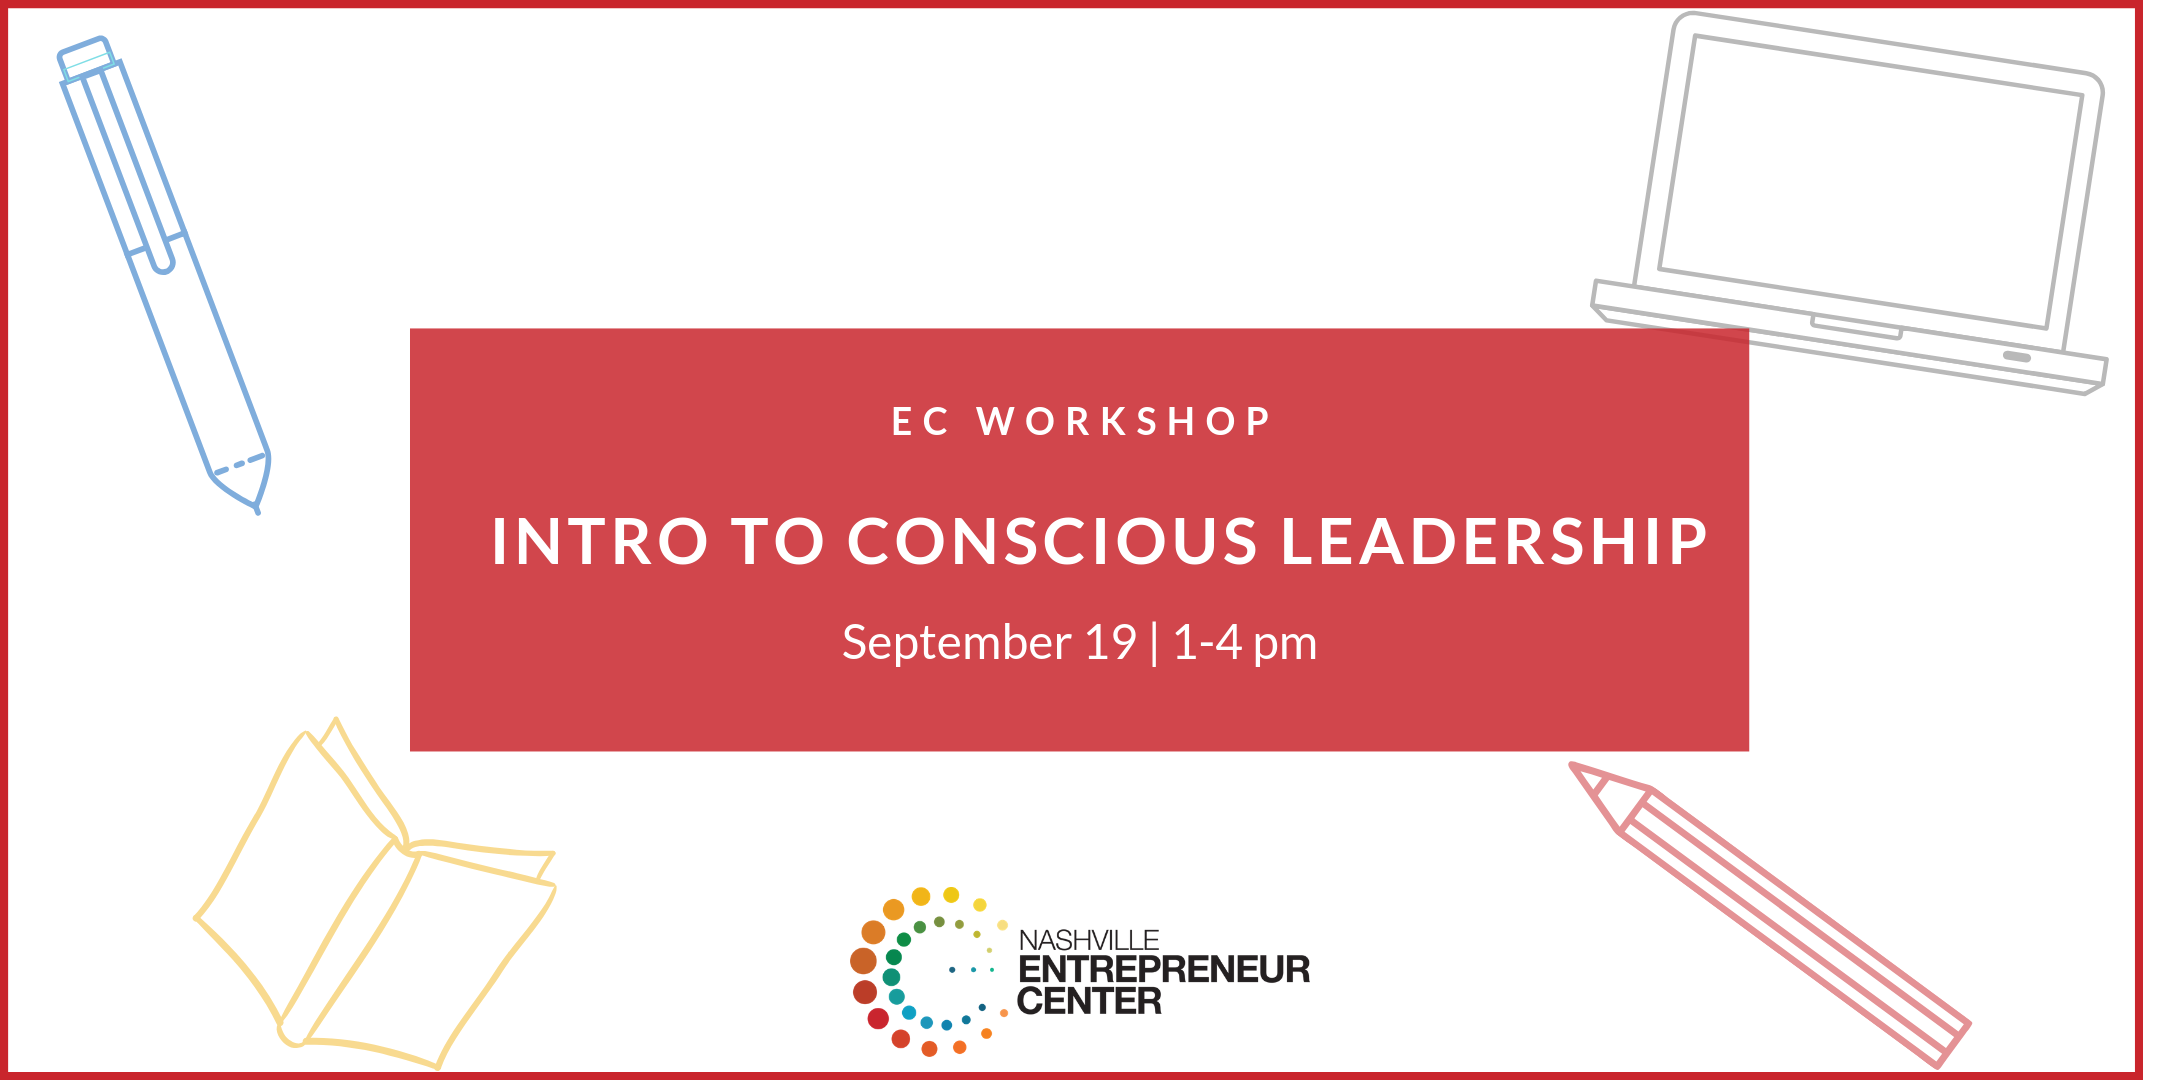 This workshop will provide an introduction to The 15 Commitments of Conscious Leadership as taught by Debra Sunderland.